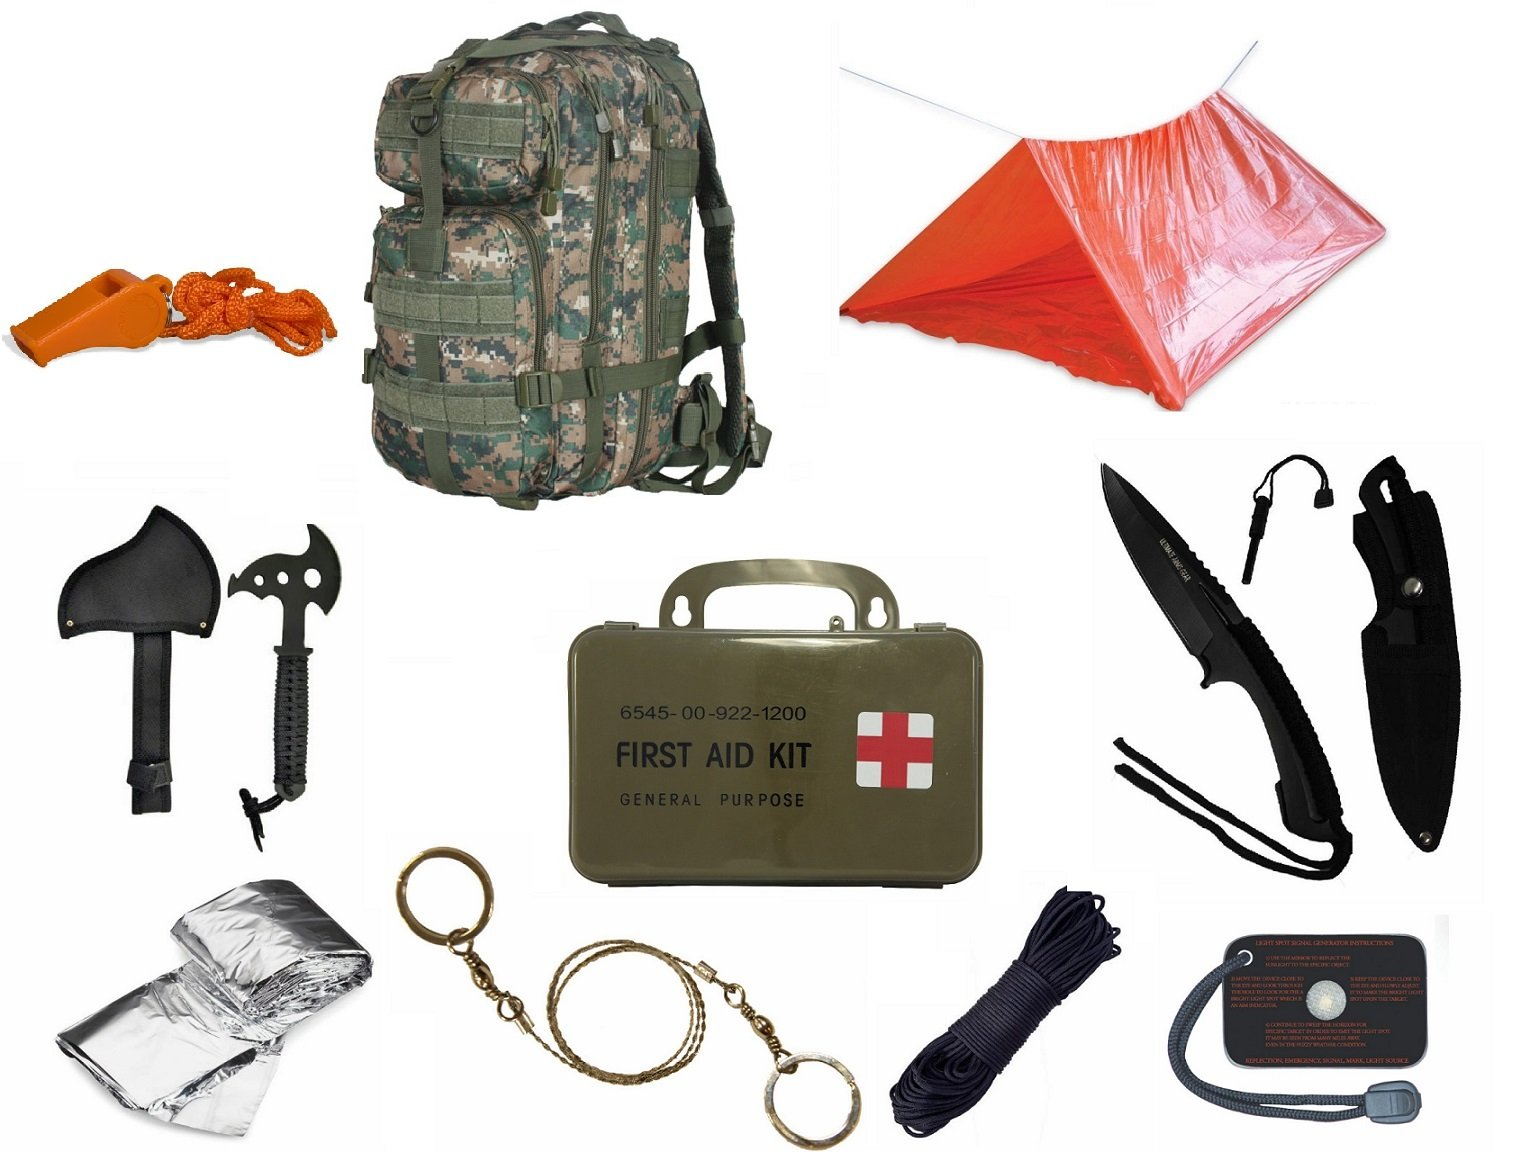 Ultimate Arms Gear Level 3 MOLLE Woodland Digital Backpack Kit; Signal Mirror, Polarshield Blanket, Knife Fire Starter, Wire Saw, Axe, 50' Foot Paracord, Camping Tube Tent, Whistle & First Aid Kit